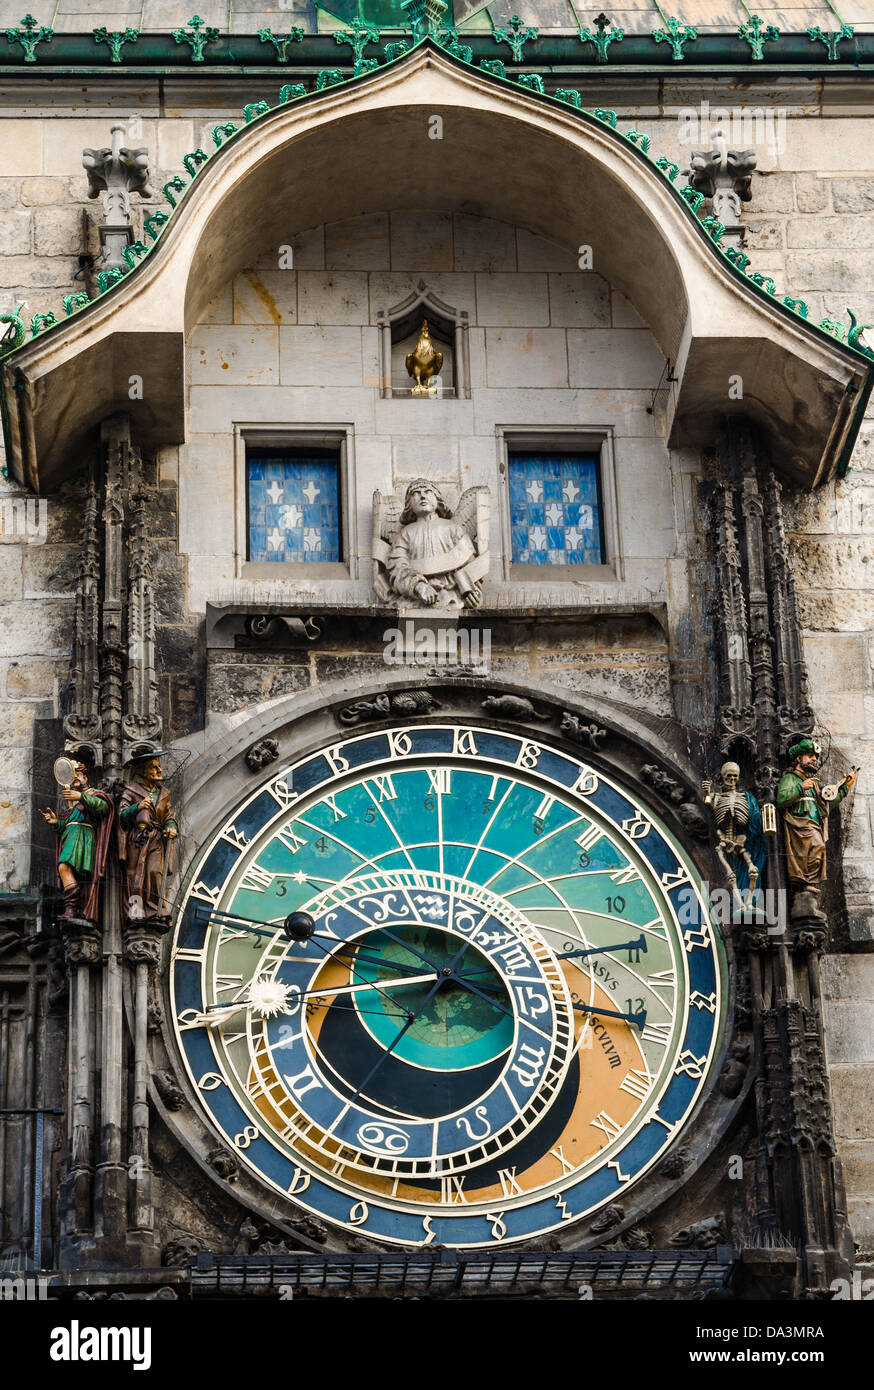 Astronomical clock on Old Town Hall in Prague, Czech - Stock Image